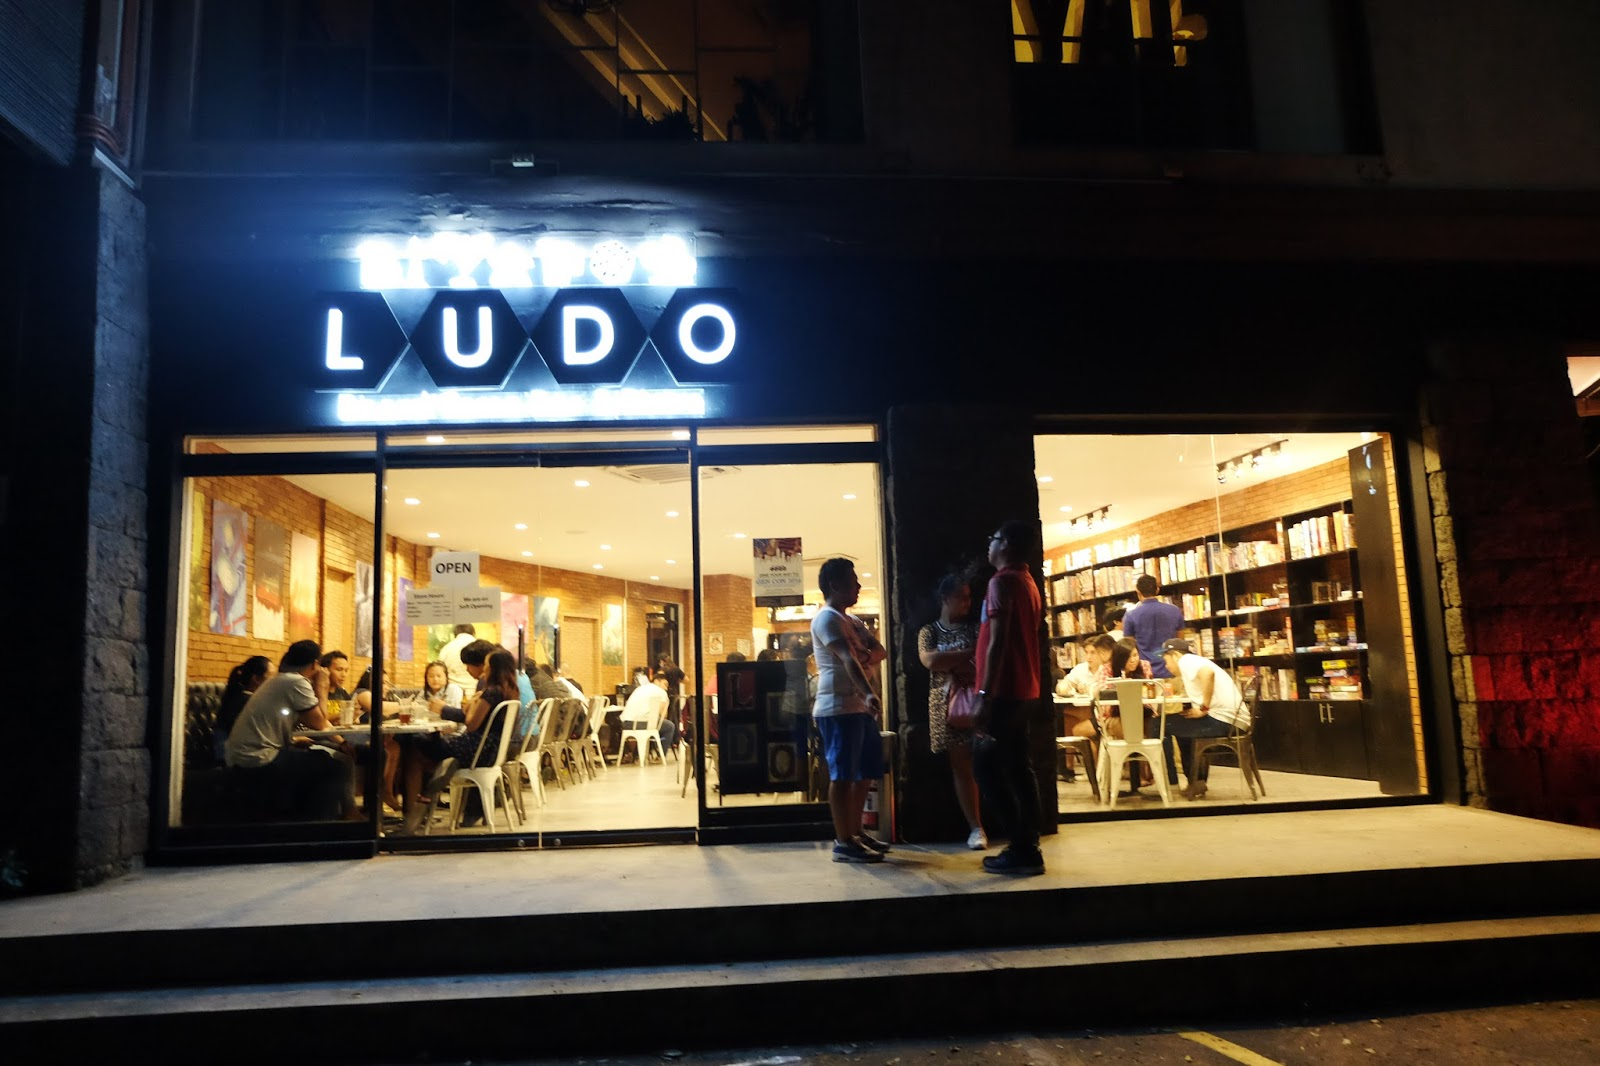 ludo boardgame bar cafe makati the foodinista. Black Bedroom Furniture Sets. Home Design Ideas